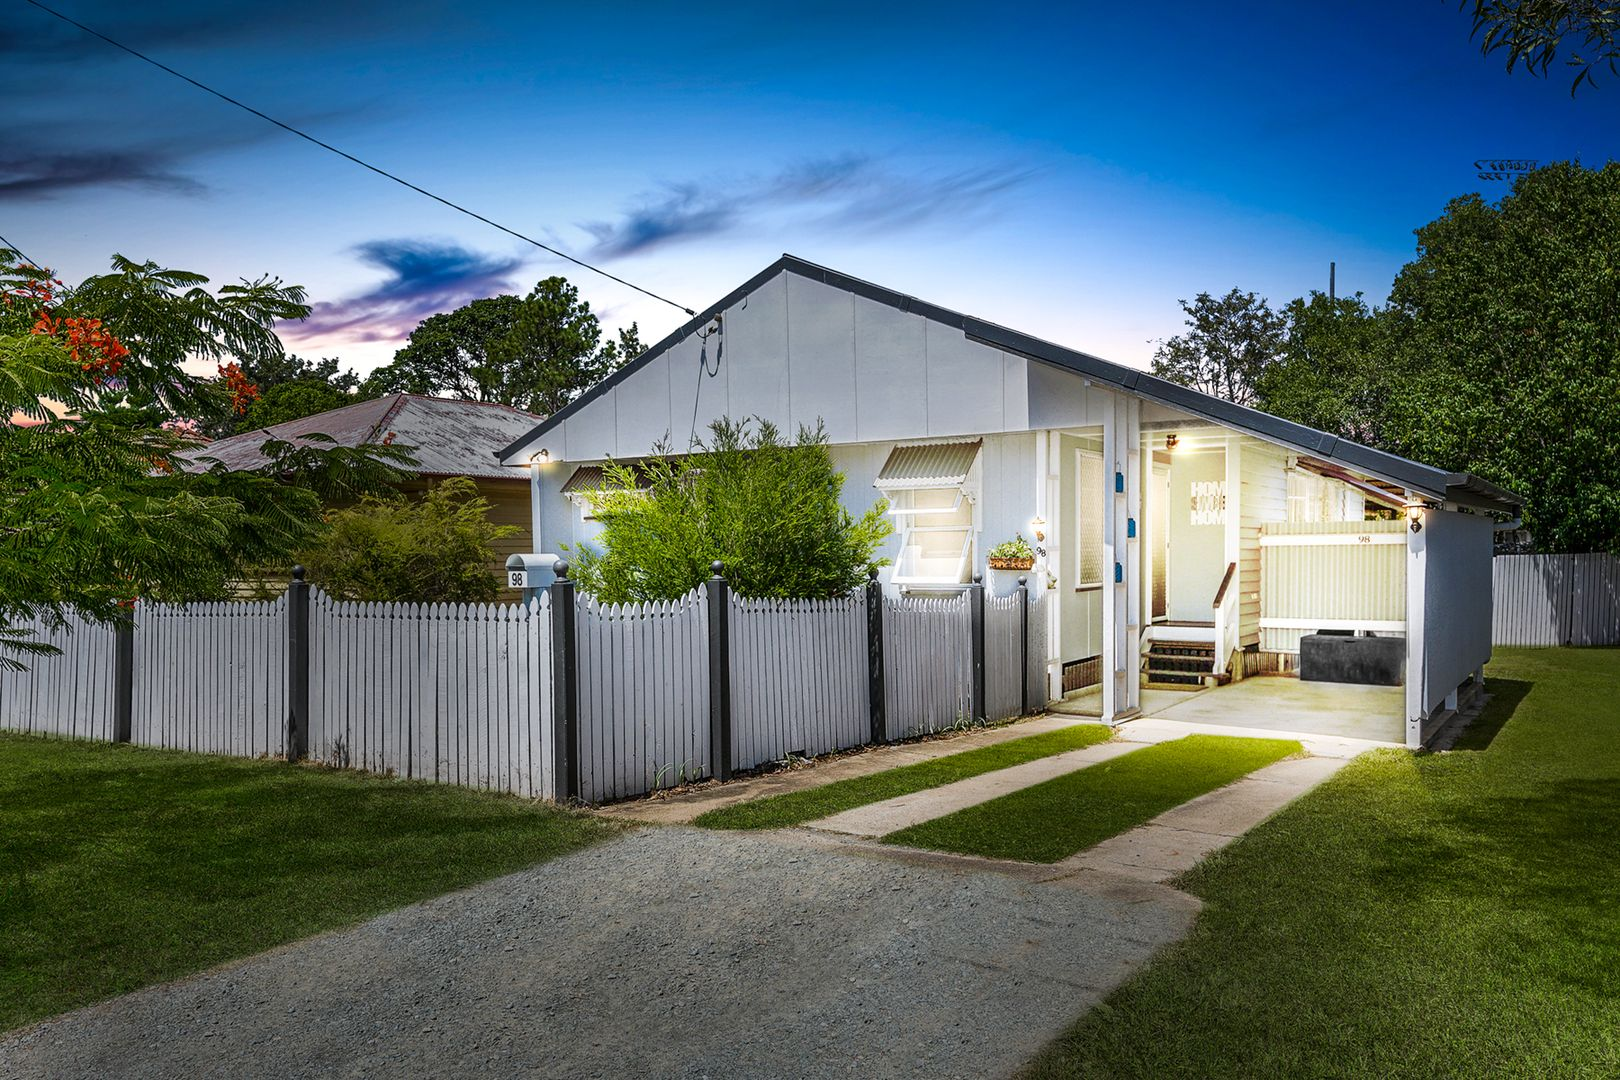 98 Gillies Street, Zillmere QLD 4034, Image 0